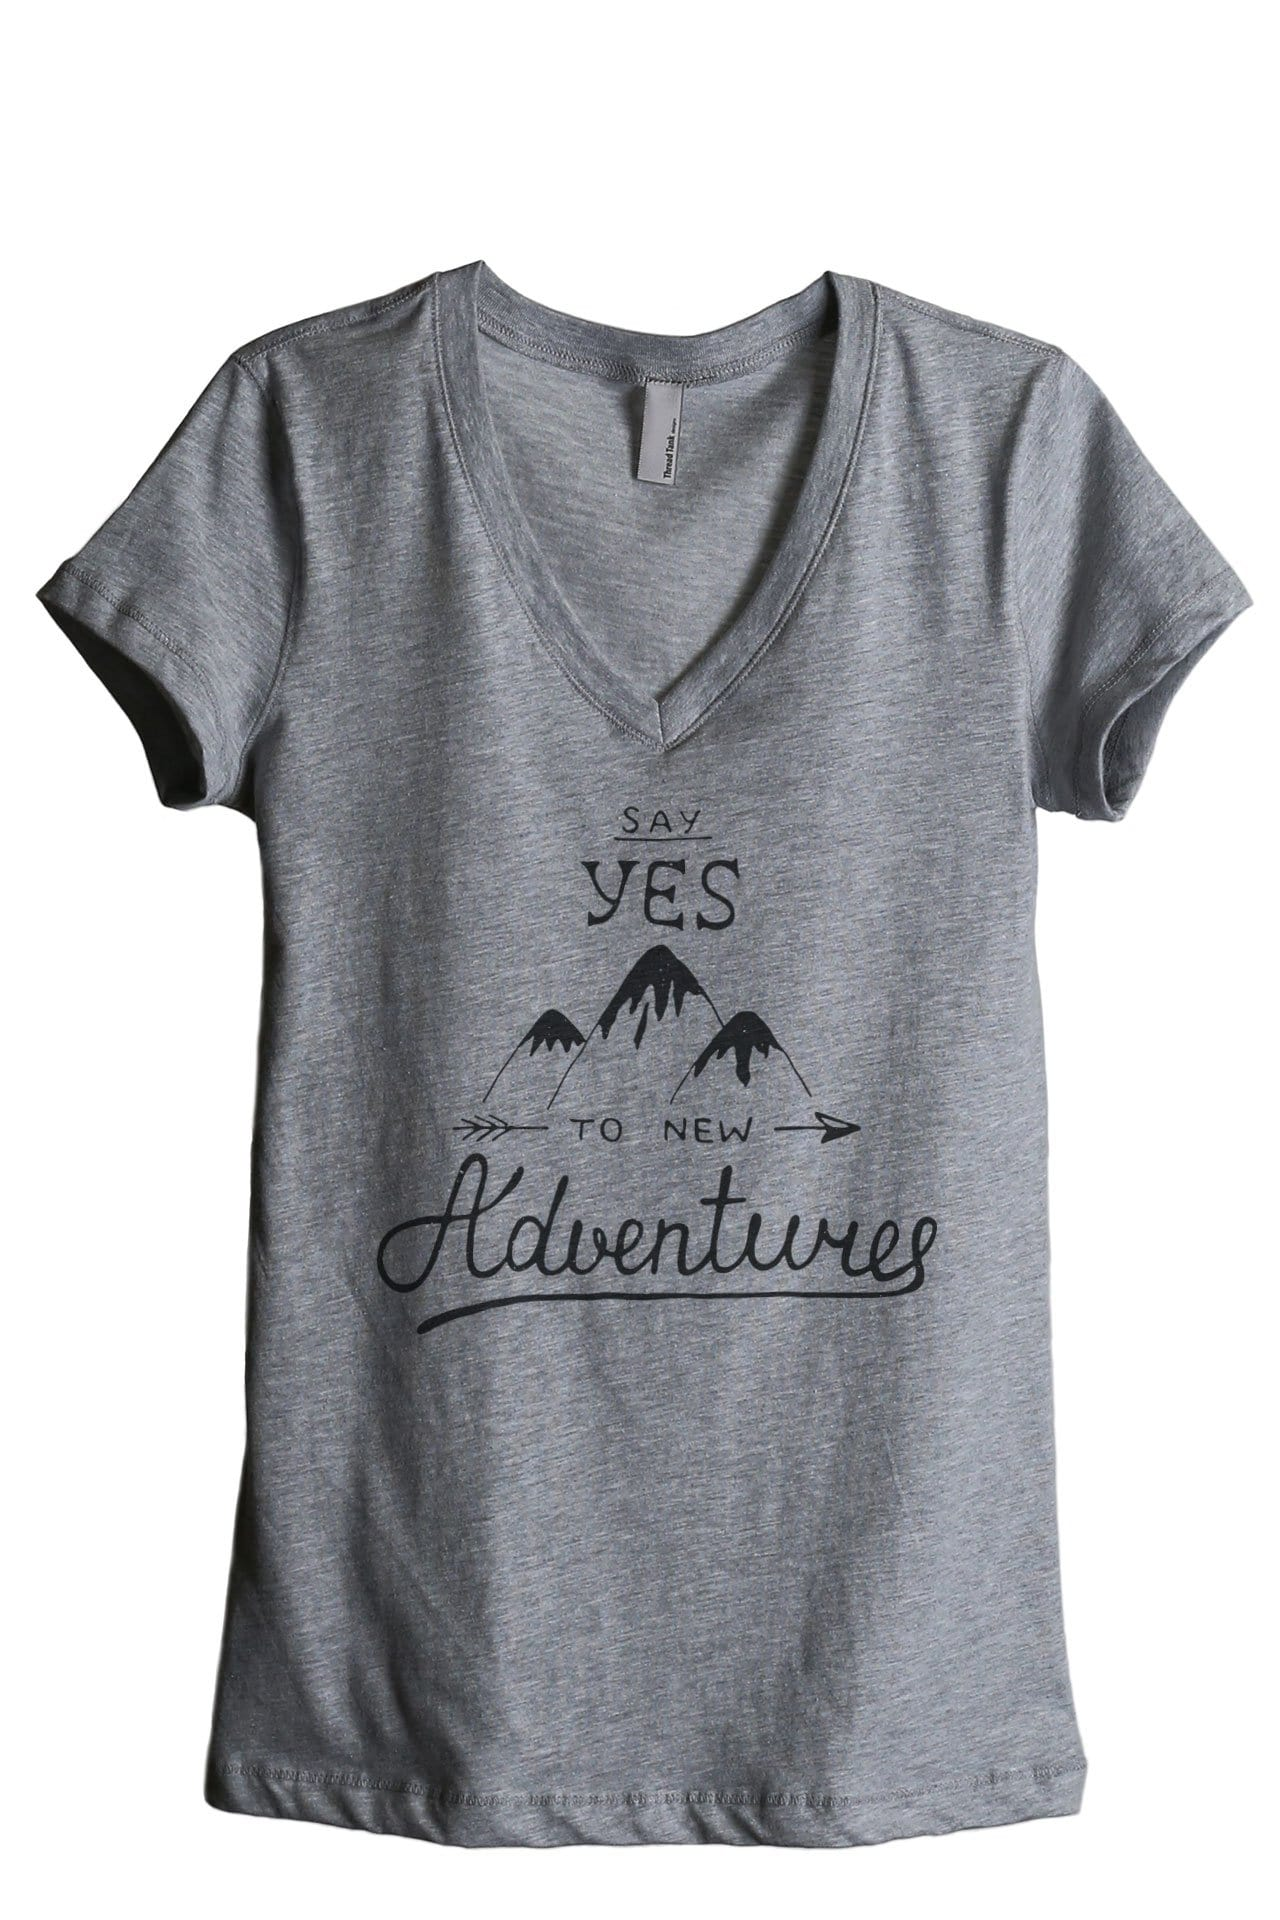 Say Yes To New Adventures Women Heather Grey V-Neck T-Shirt Tee Top